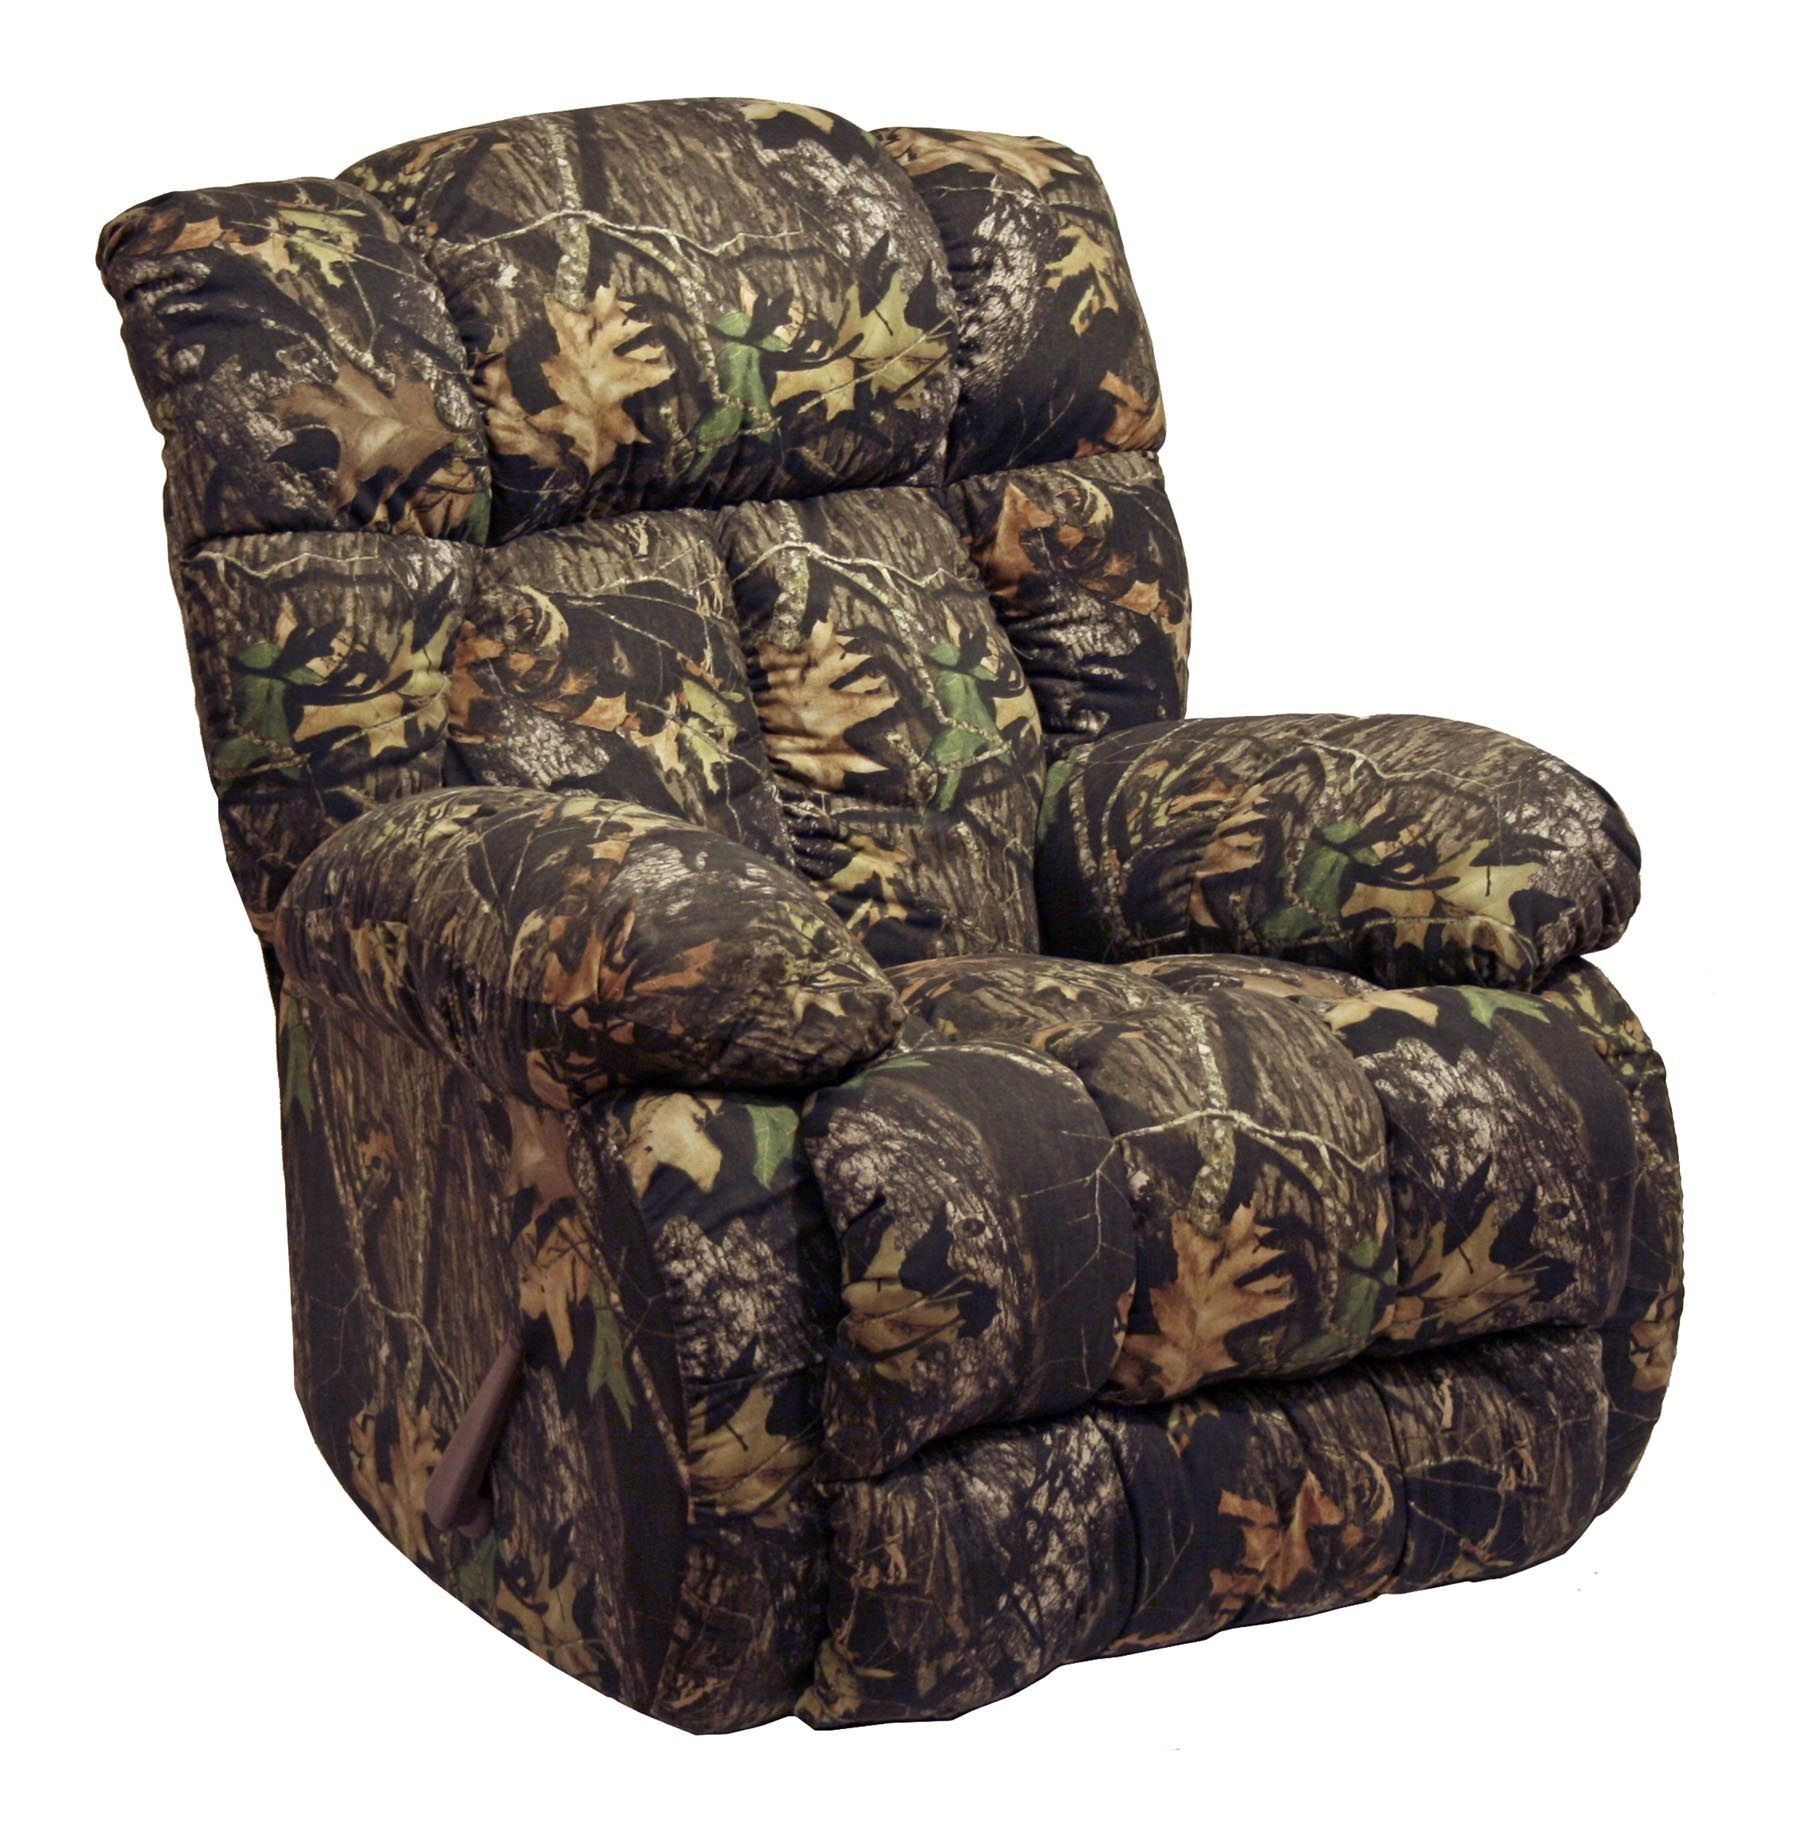 Laredo mossy oak camo rocker recliner from catnapper for Catnapper cloud nine chaise recliner